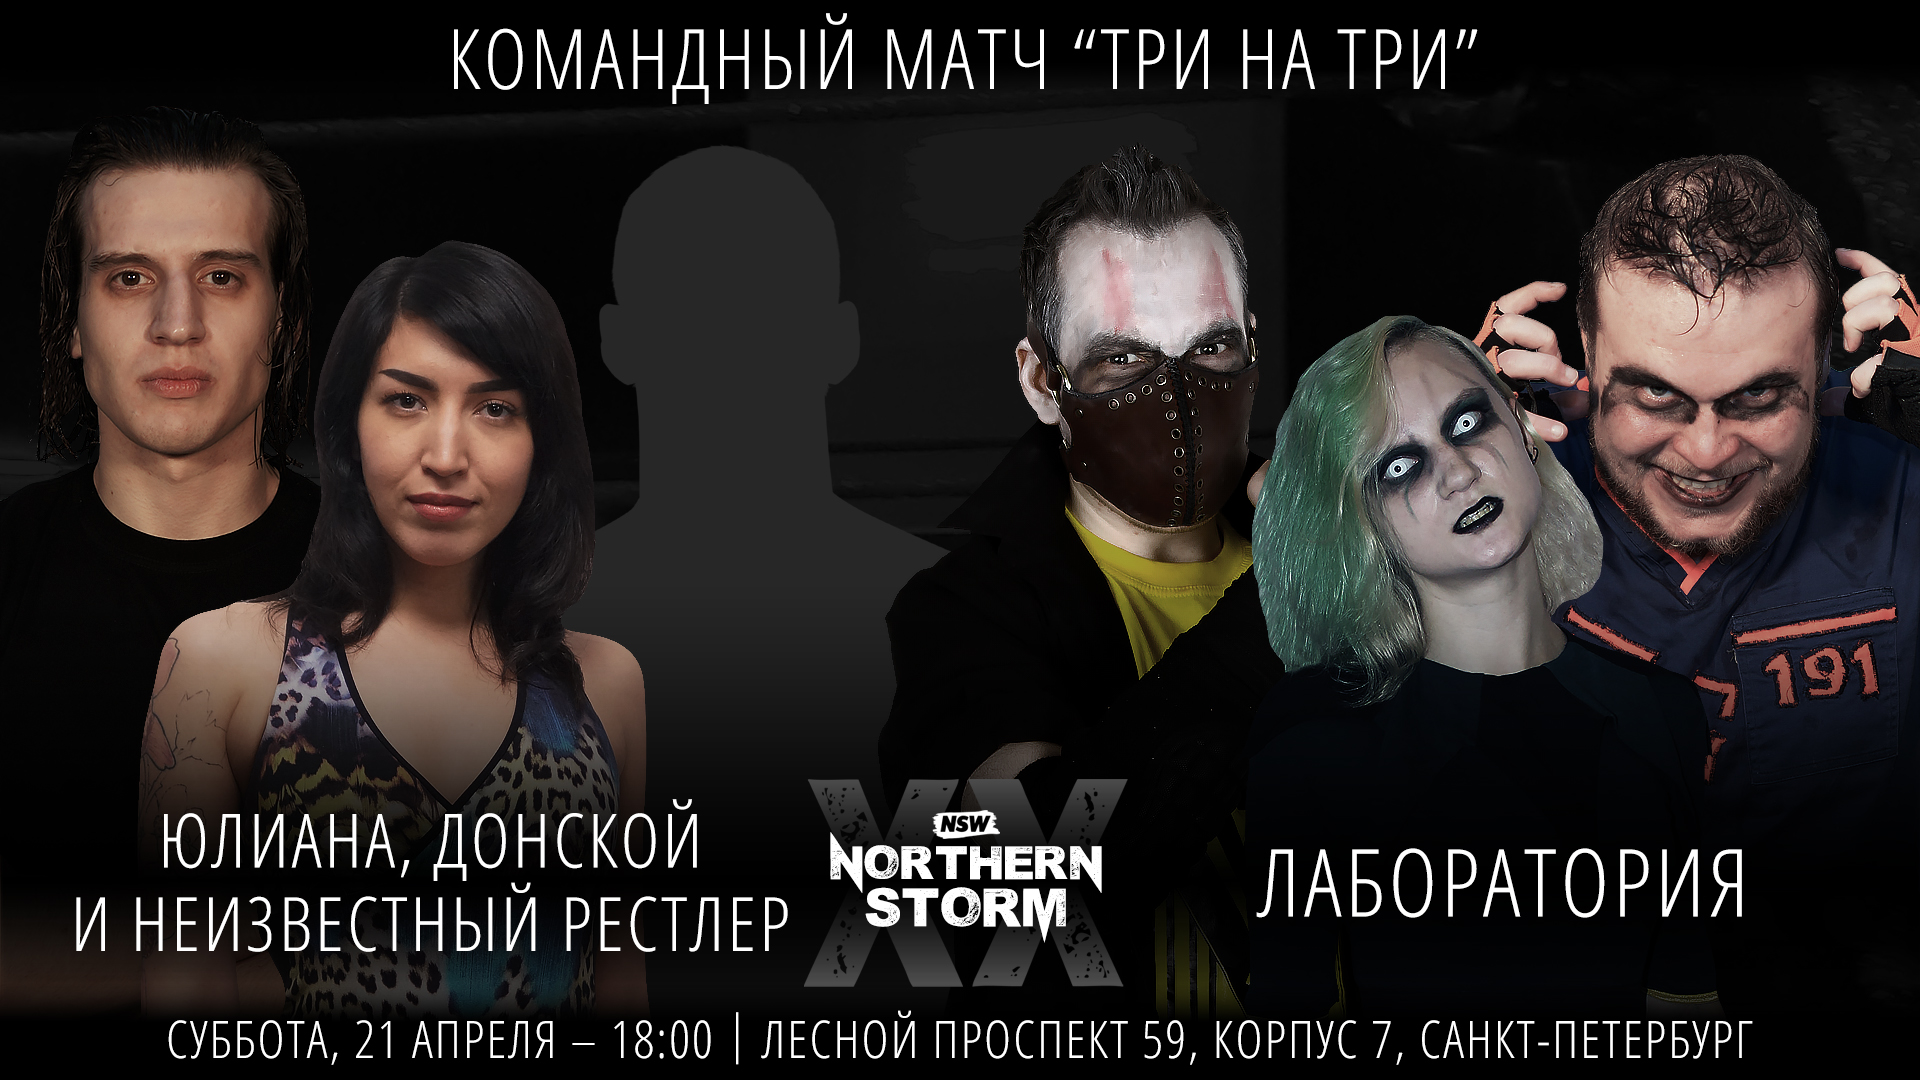 NSW Northern Storm XX: Юлиана, Дмитрий Донской и неизвестный рестлер против Лаборатории [Виктор Айзенхардт, НЭД и Литана]